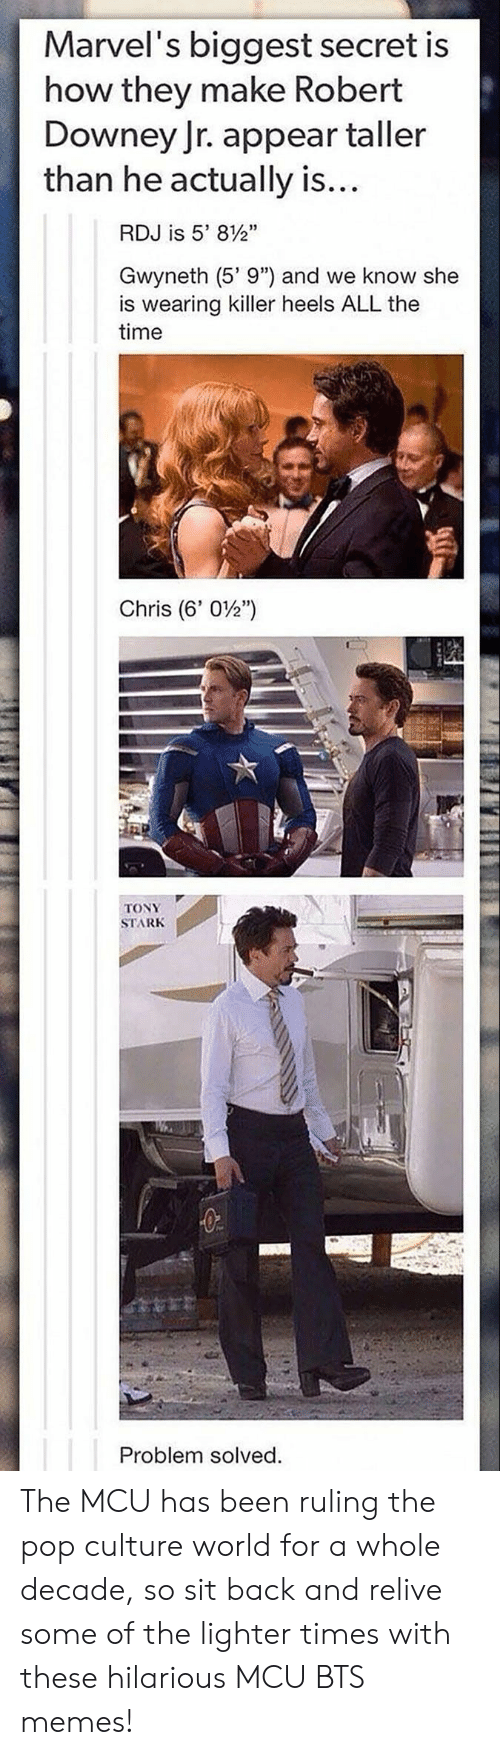 """Memes, Pop, and Robert Downey Jr.: Marvel's biggest secret is  how they make Robert  Downey Jr. appear taller  than he actually is...  RDJ is 5' 812""""  Gwyneth (5' 9"""") and we know she  is wearing killer heels ALL the  time  Chris (6, 0½')  31  TONY  STARK The MCU has been ruling the pop culture world for a whole decade, so sit back and relive some of the lighter times with these hilarious MCU BTS memes!"""